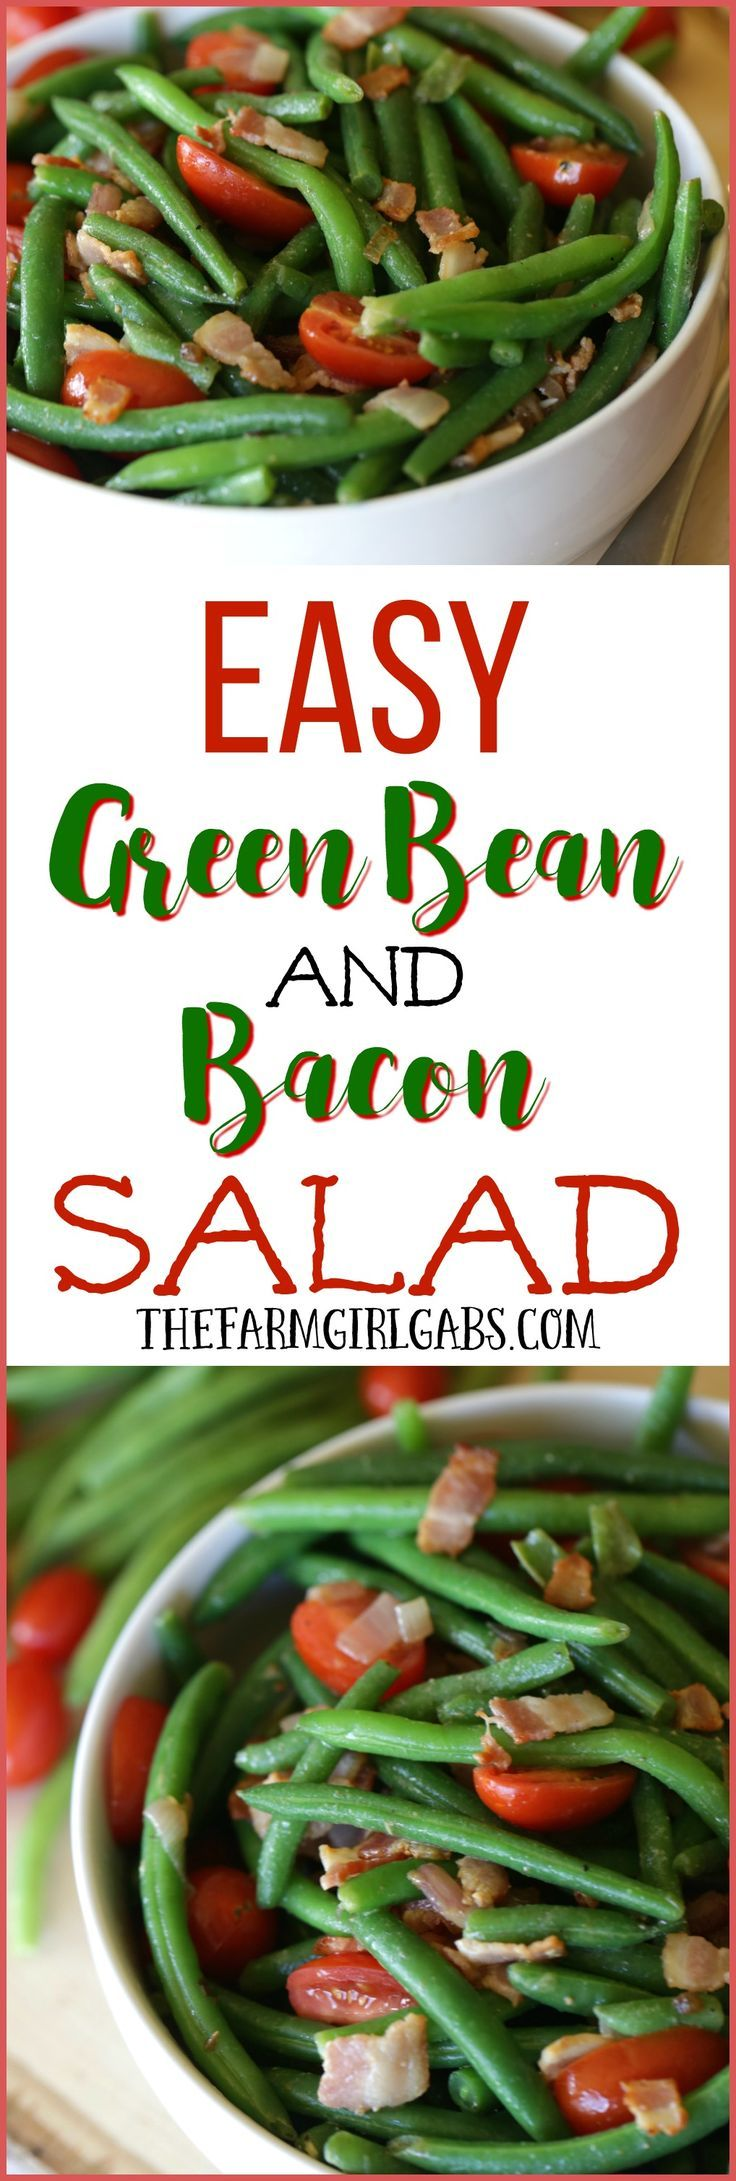 Are you planning the Ultimate Easter Menu? This Easy Green Bean And Bacon Salad is the perfect side dish recipe to enjoy any time of the year.